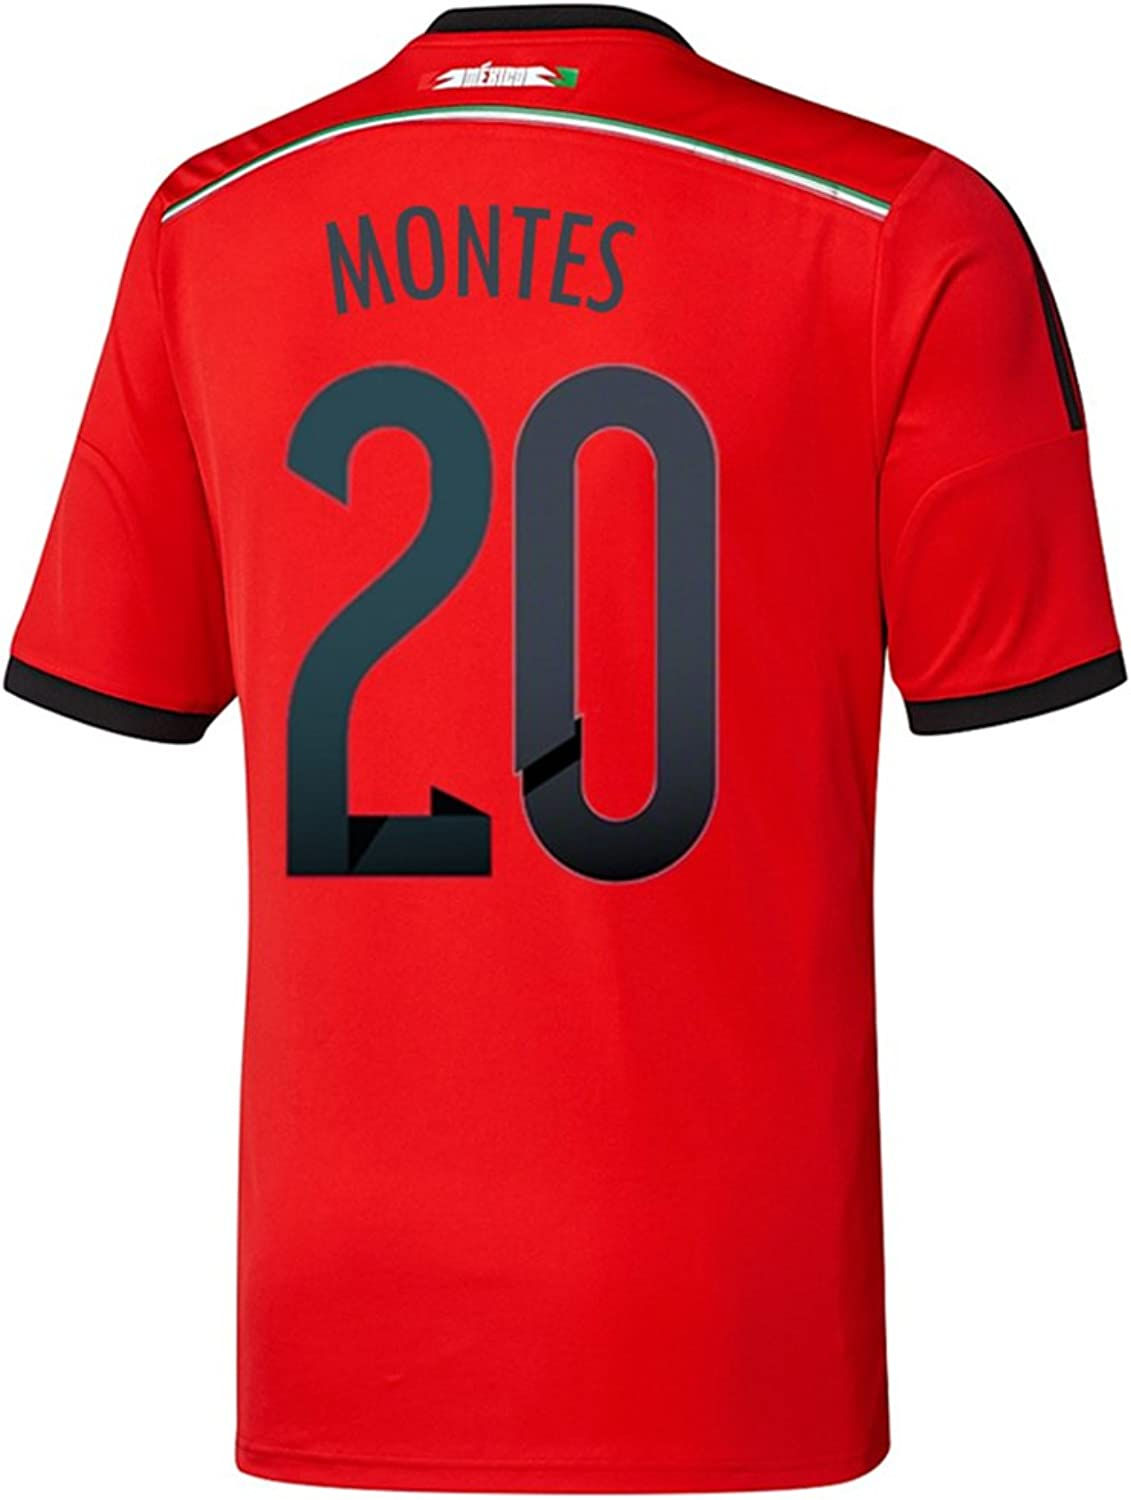 Adidas Montes  20 Mexico Away Jersey World Cup 2014 (S)